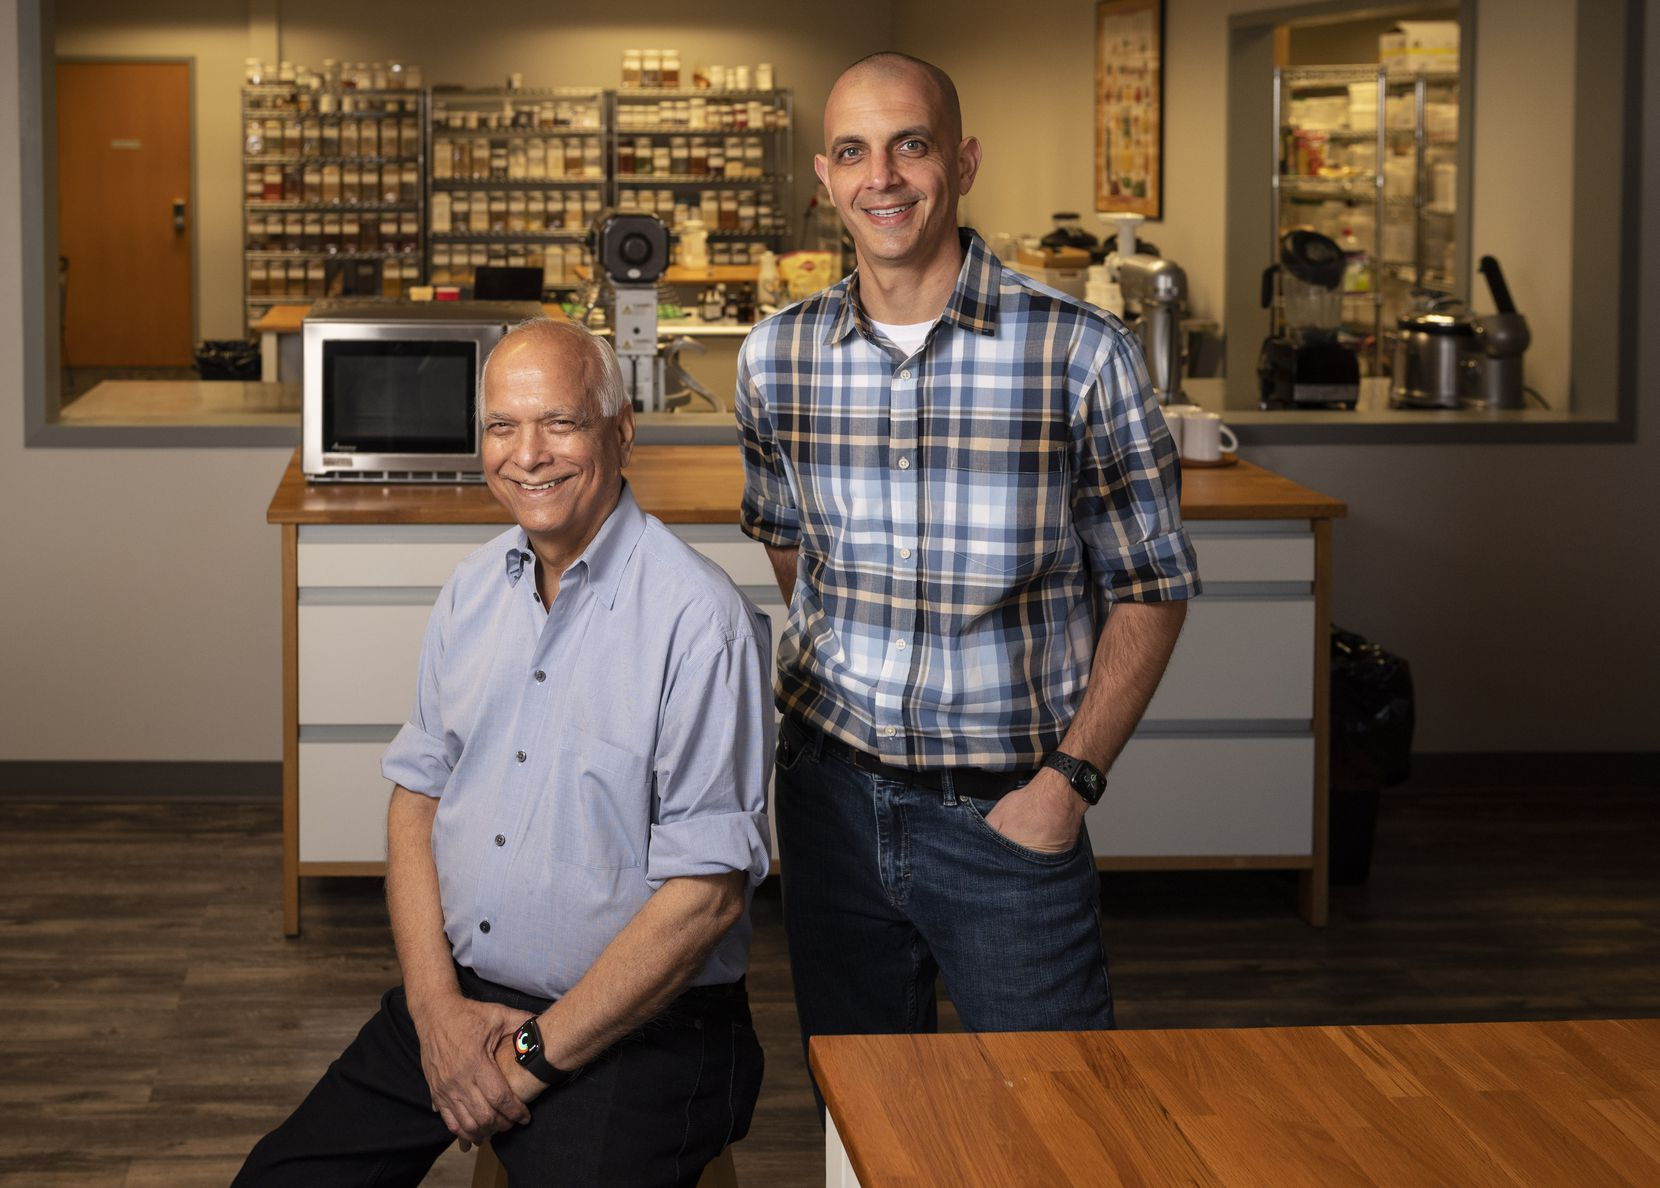 Surinder Kumar, left, CEO-Chief Innovation Officer, and his son Daven Kumar, Co-founder and CMO of TruEats Modern Baking Company, inside a research and development lab at Culinary Focus in Grand Prairie